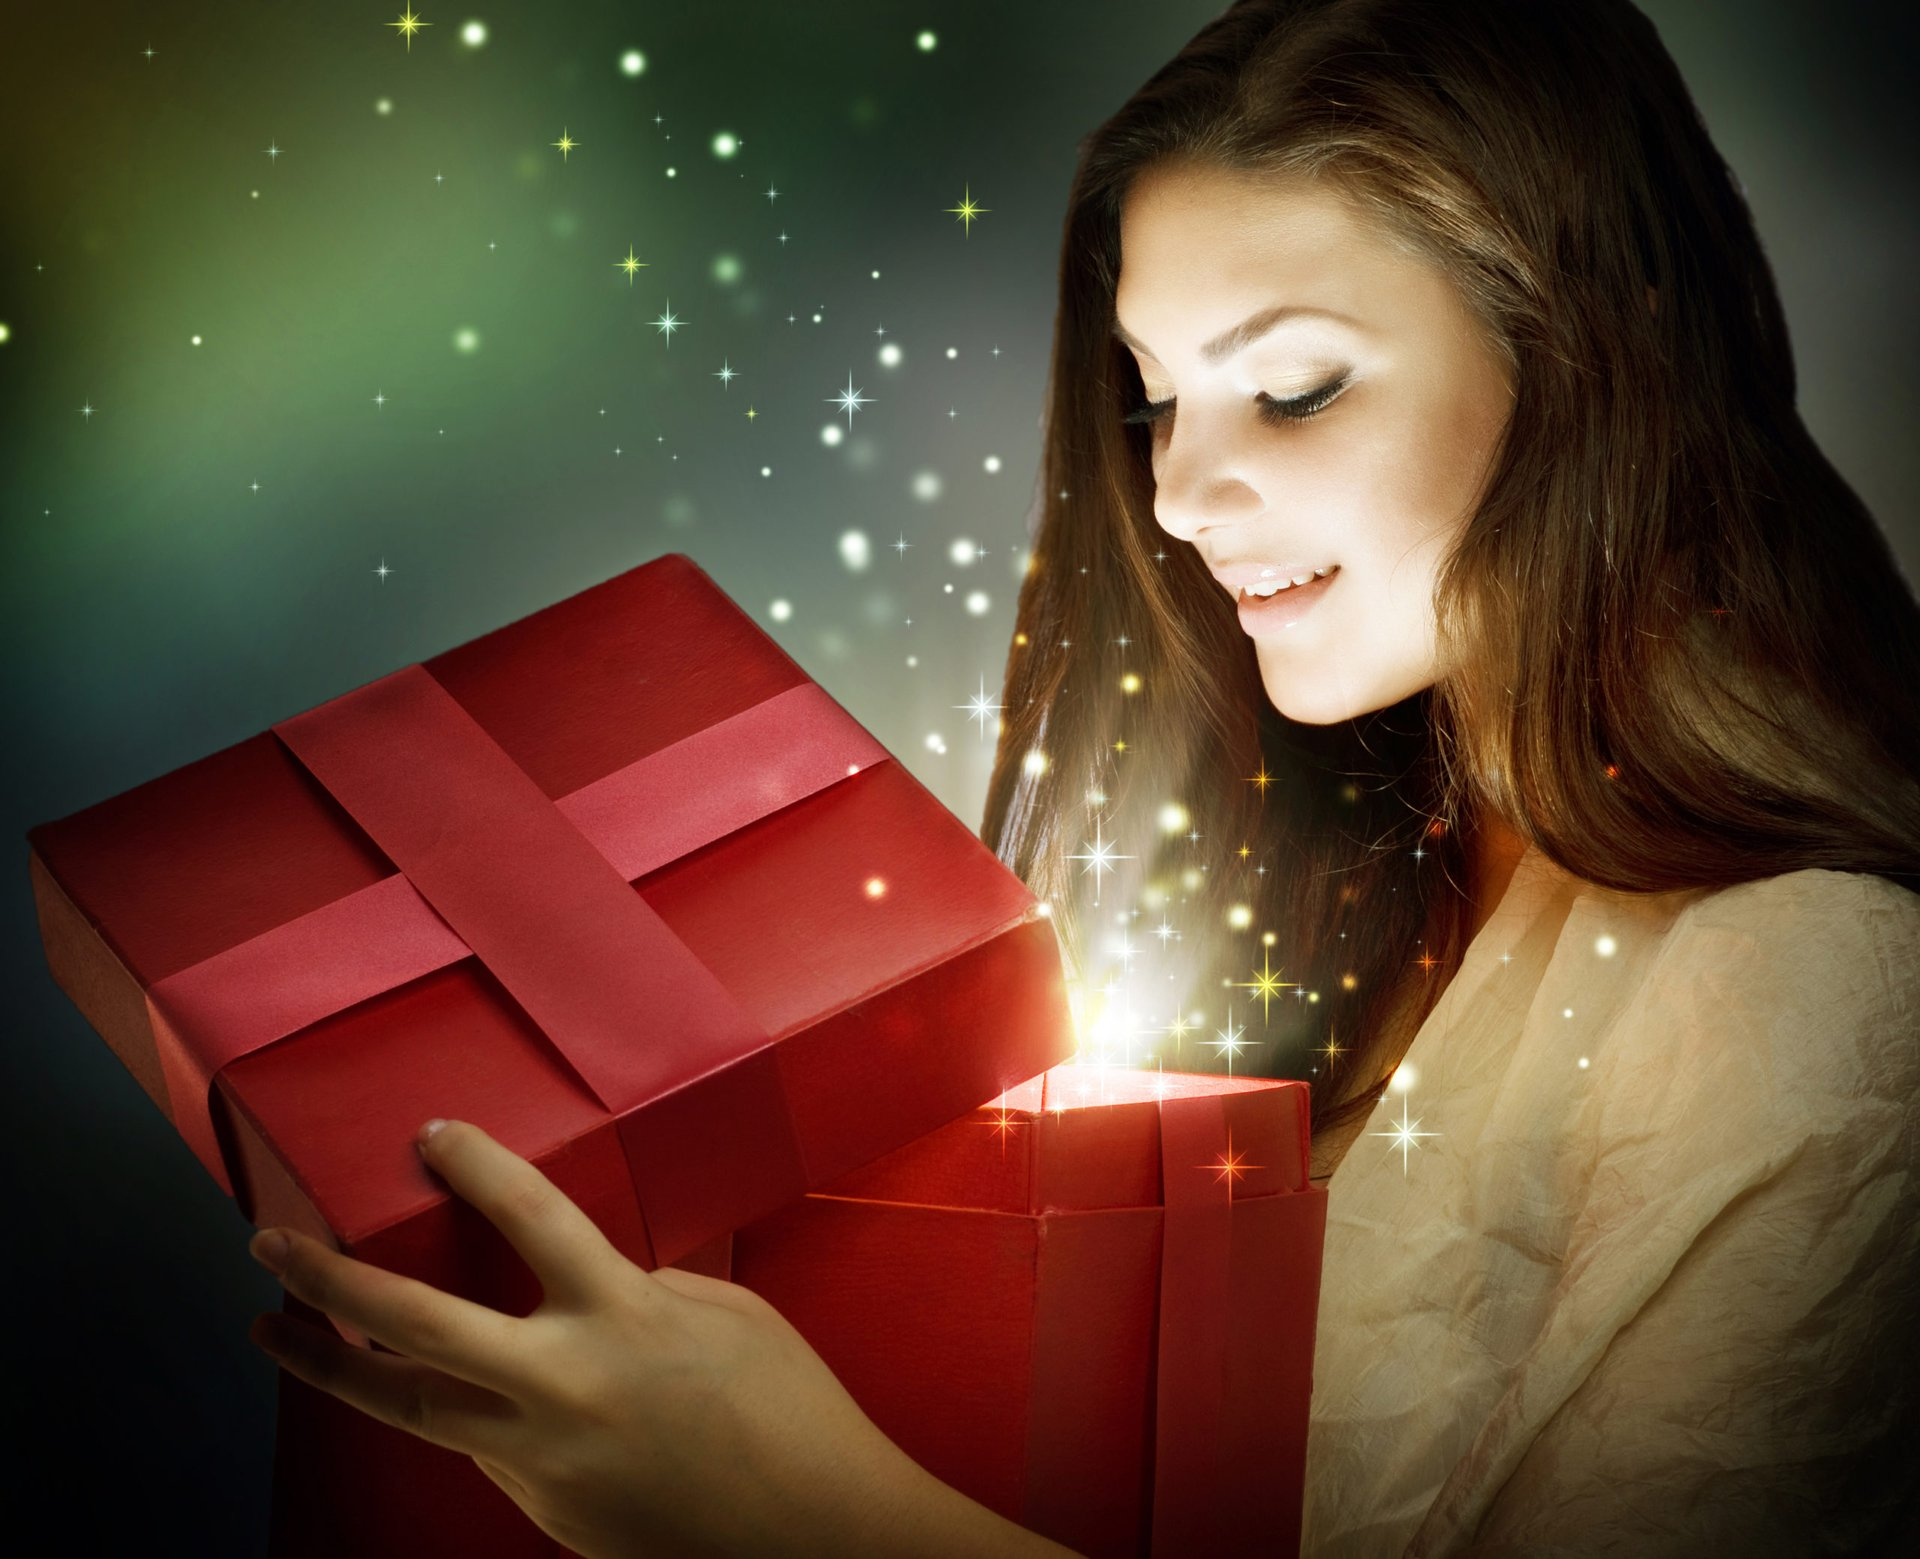 A woman opens a magical holiday gift